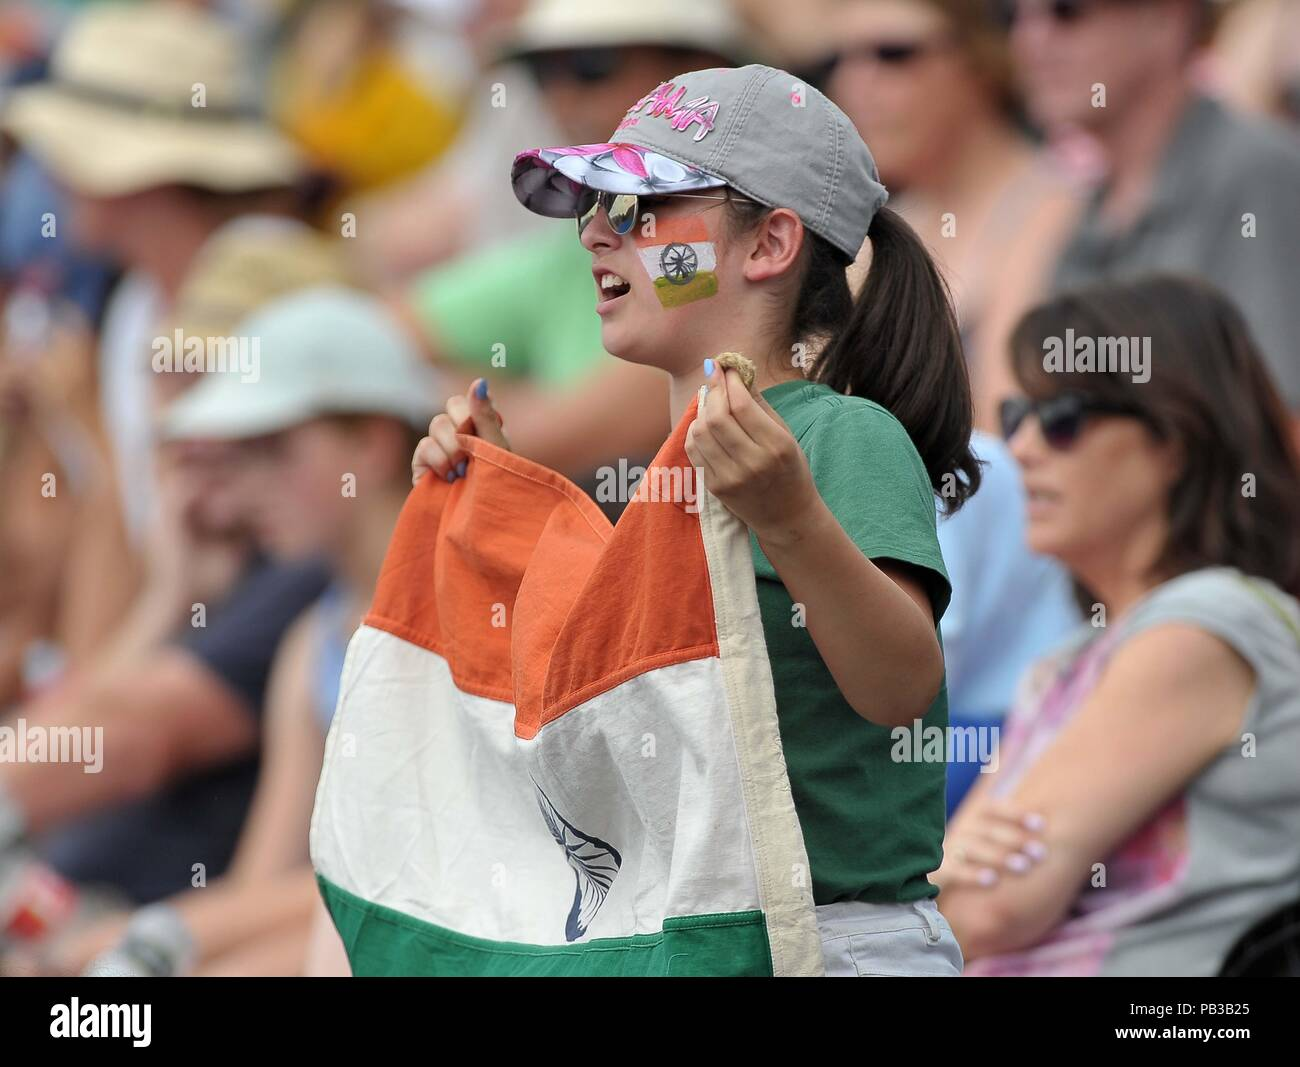 5ff5a6b6ec8e London, UK. 26th July, 2018. An India supporter with facepaint and a